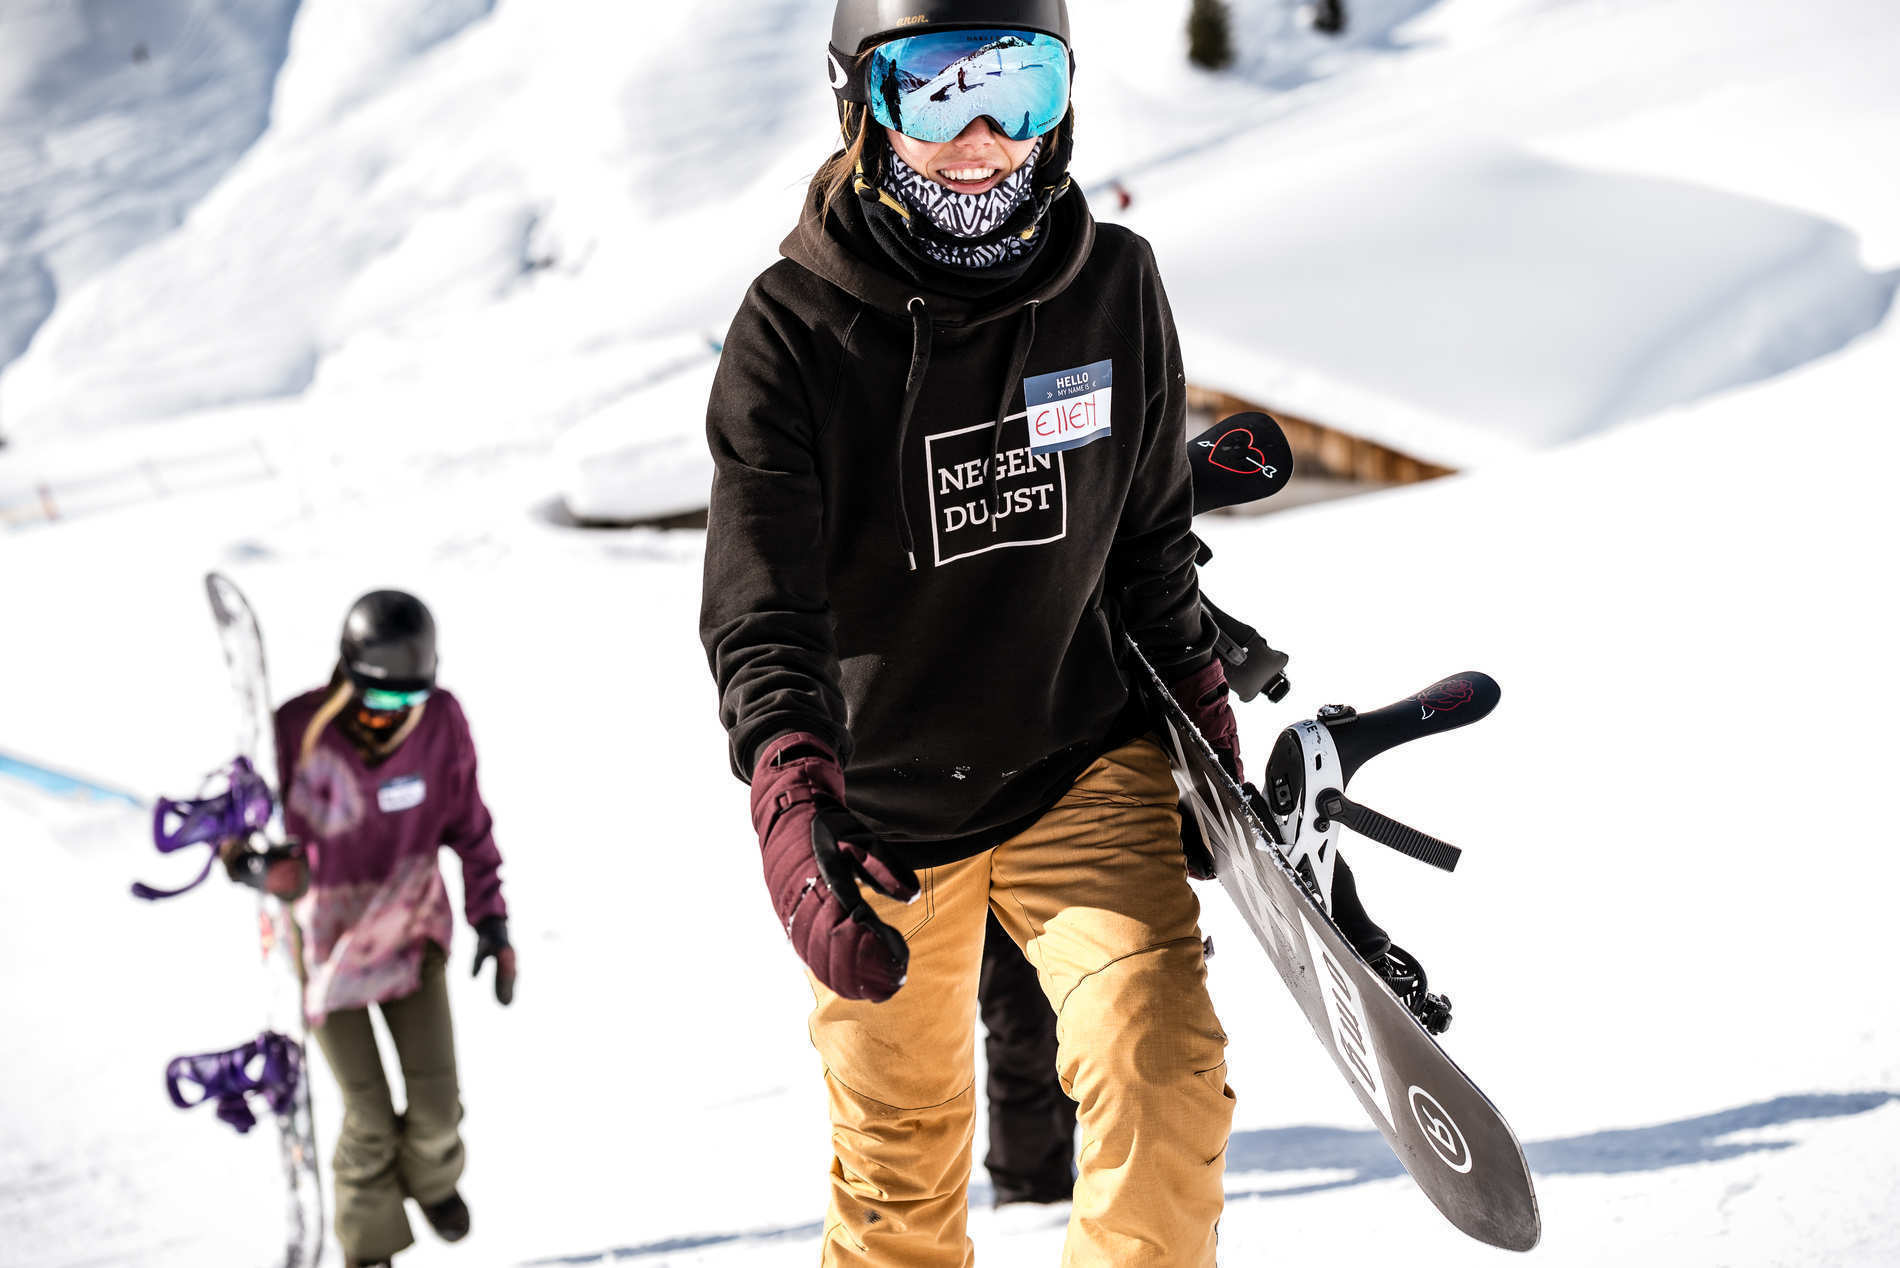 web mayrhofen 16 02 2019 lifestyle sb unknown rider christian riefenberg qparks 16